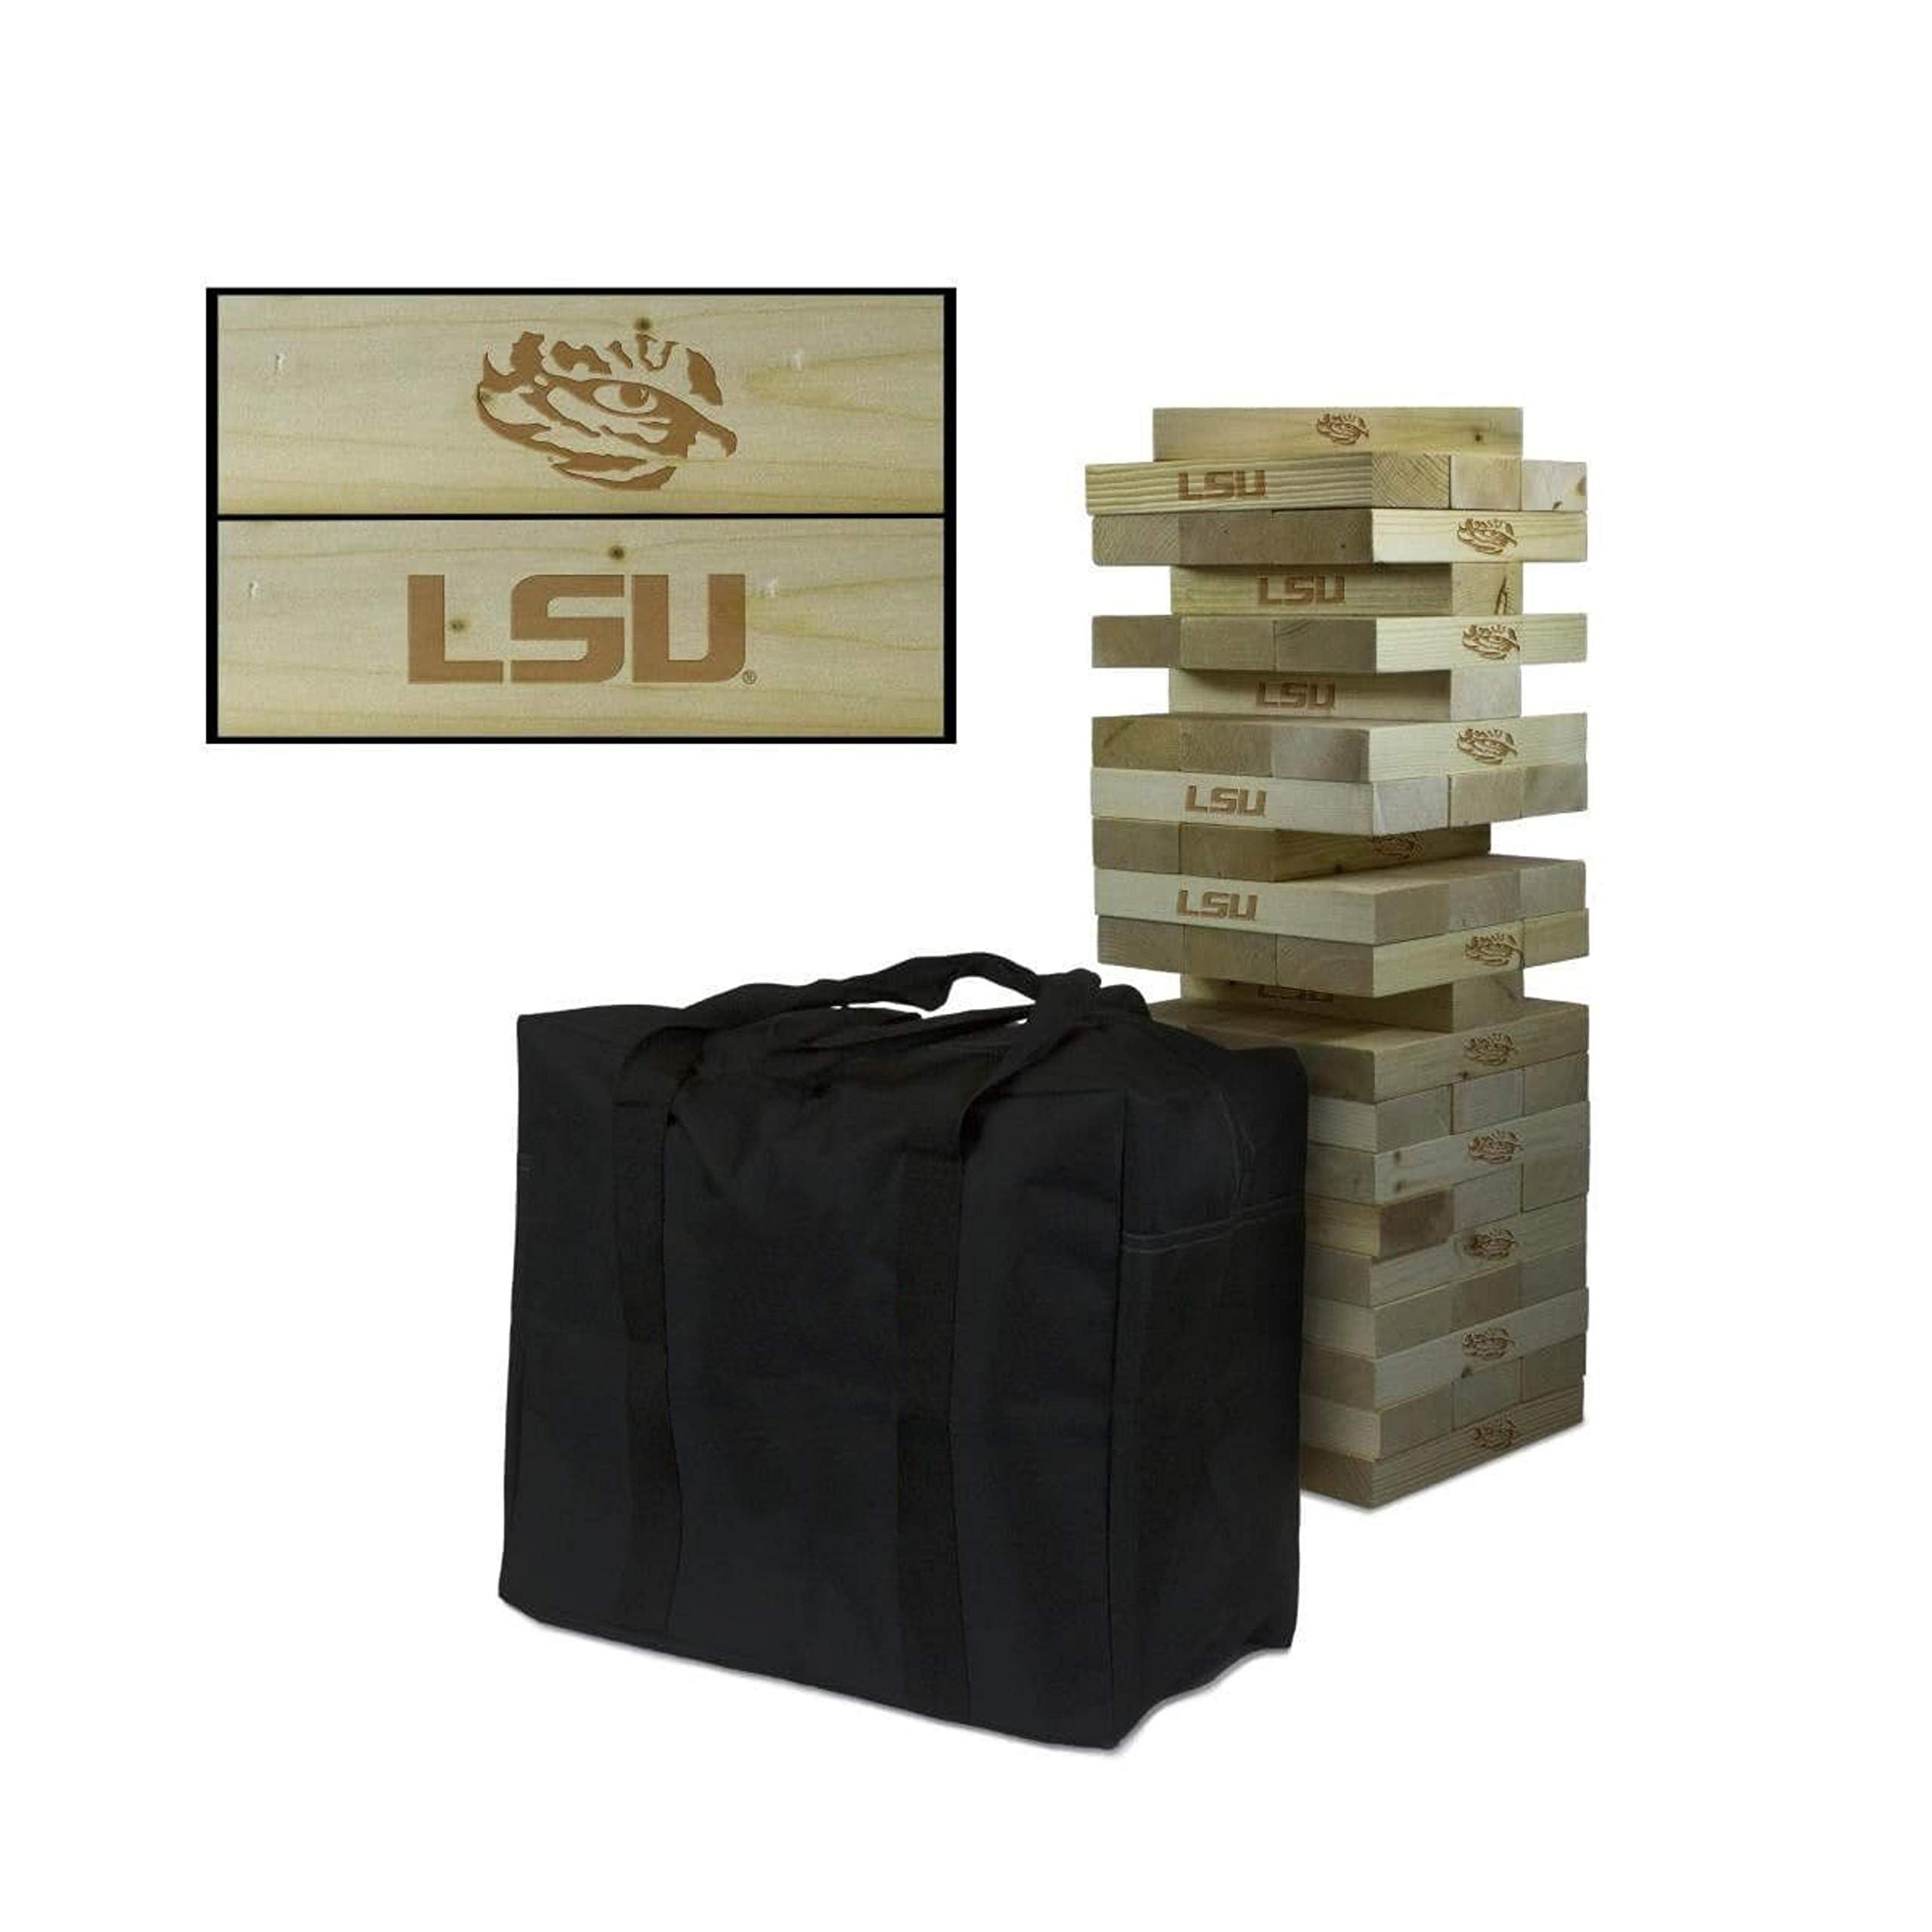 Victory Tailgate NCAA Giant Wooden Tumble Tower Game Set - Louisiana State University LSU Tigers by Victory Tailgate